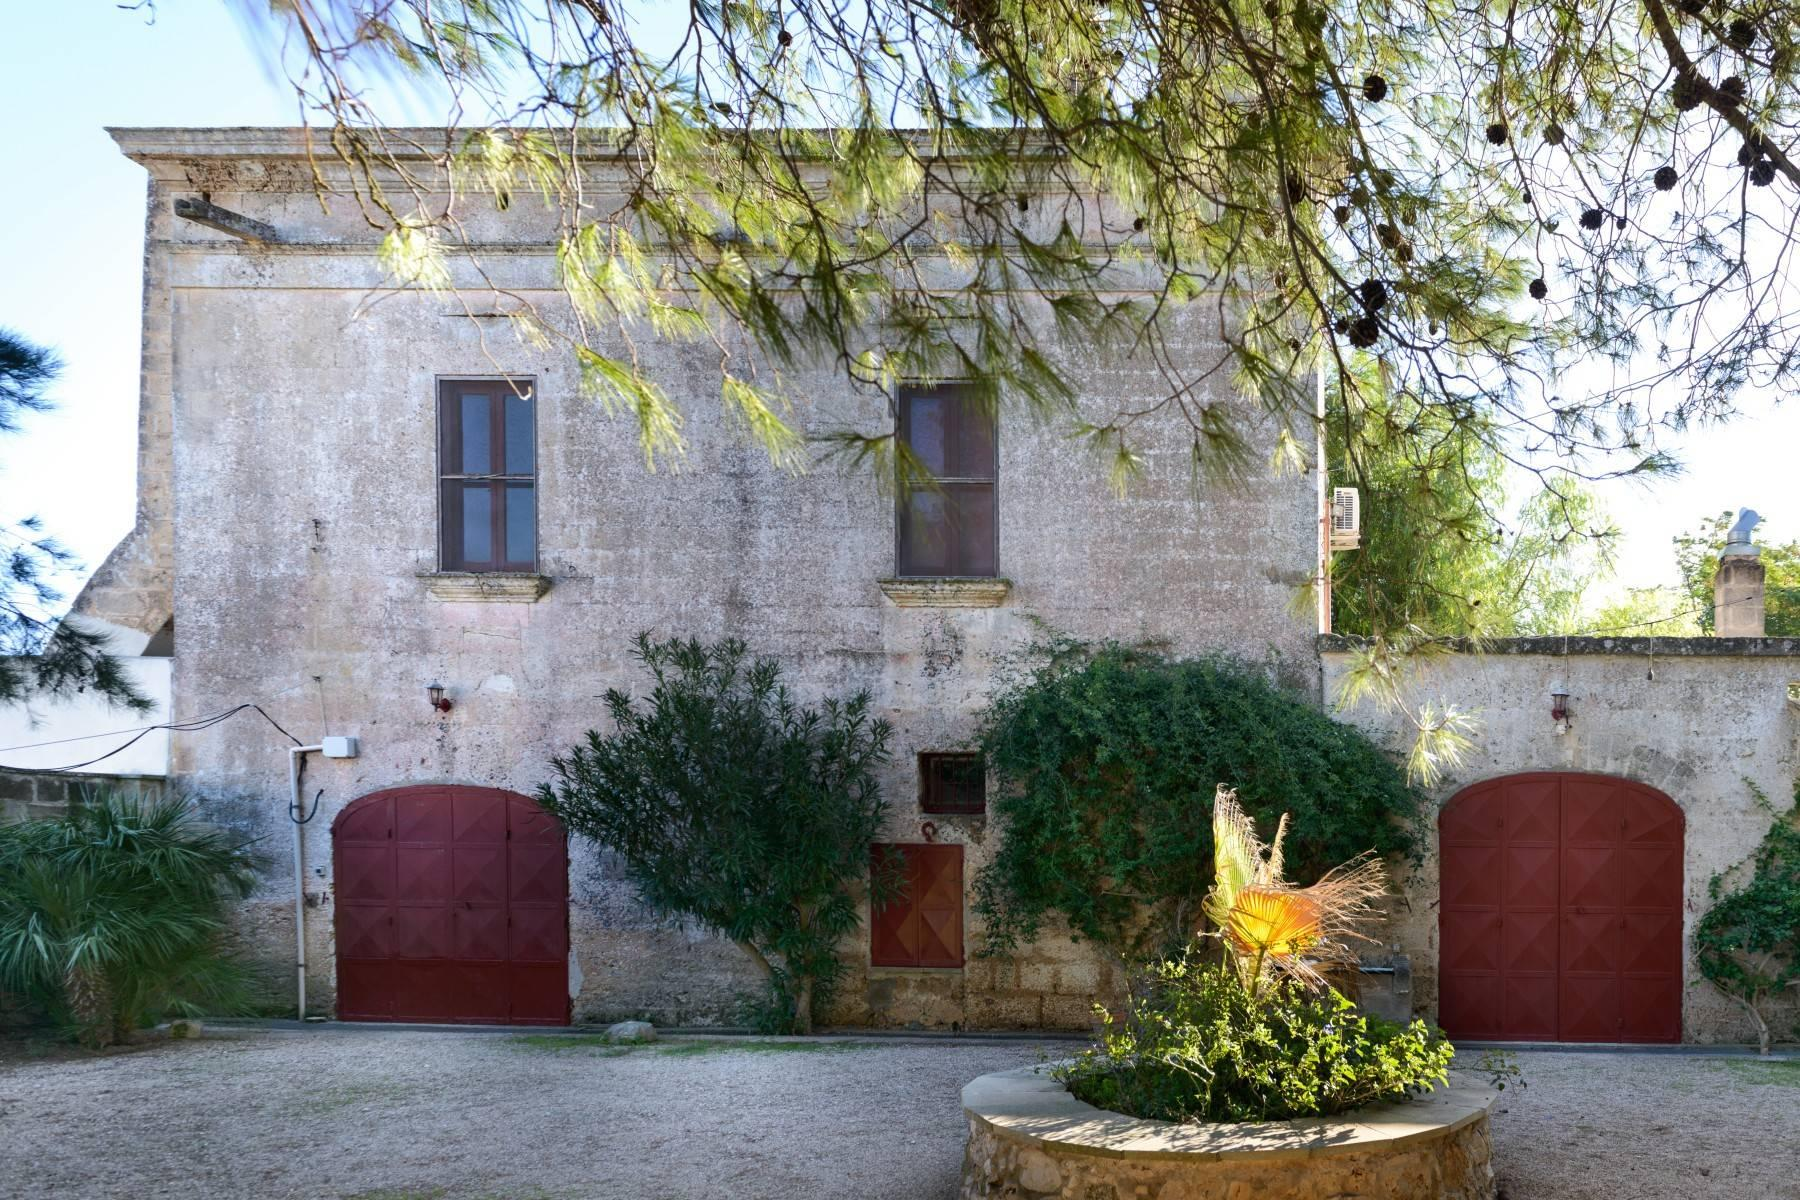 Luxury farmhouse in the heart of Salento - 2